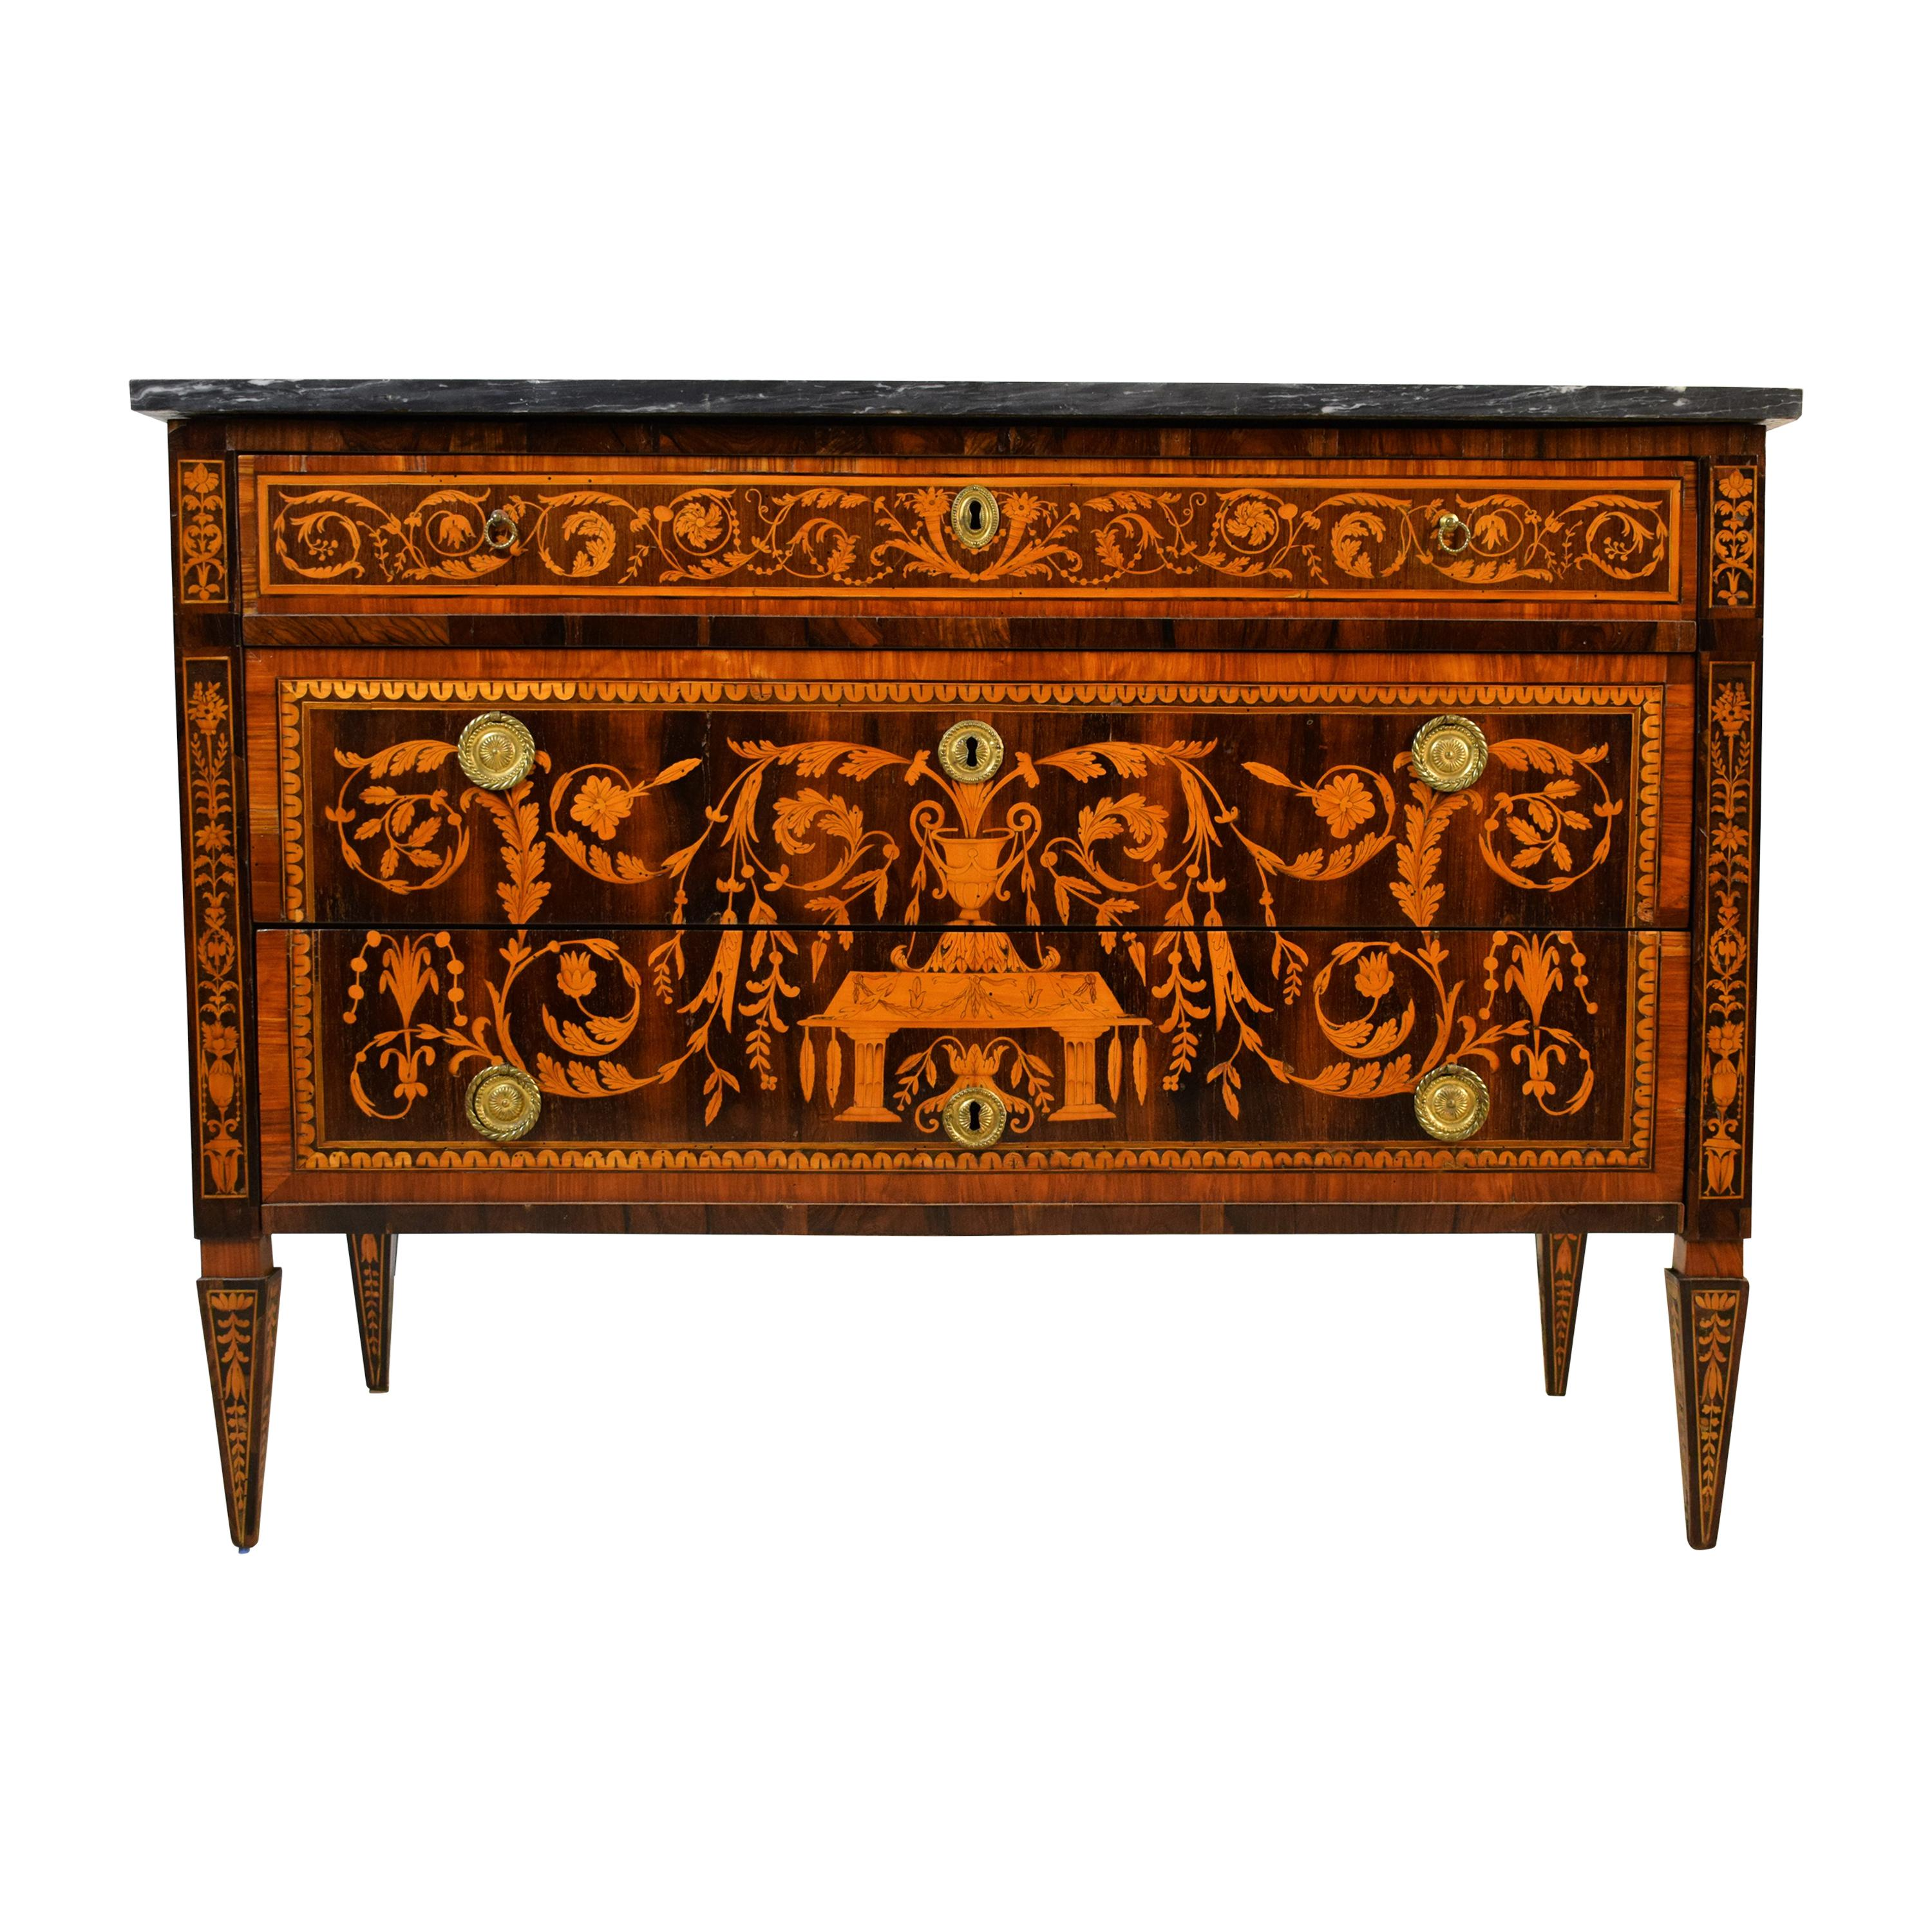 18th Century, Italian Neoclassical Inlaid Wood Chest of Drawers